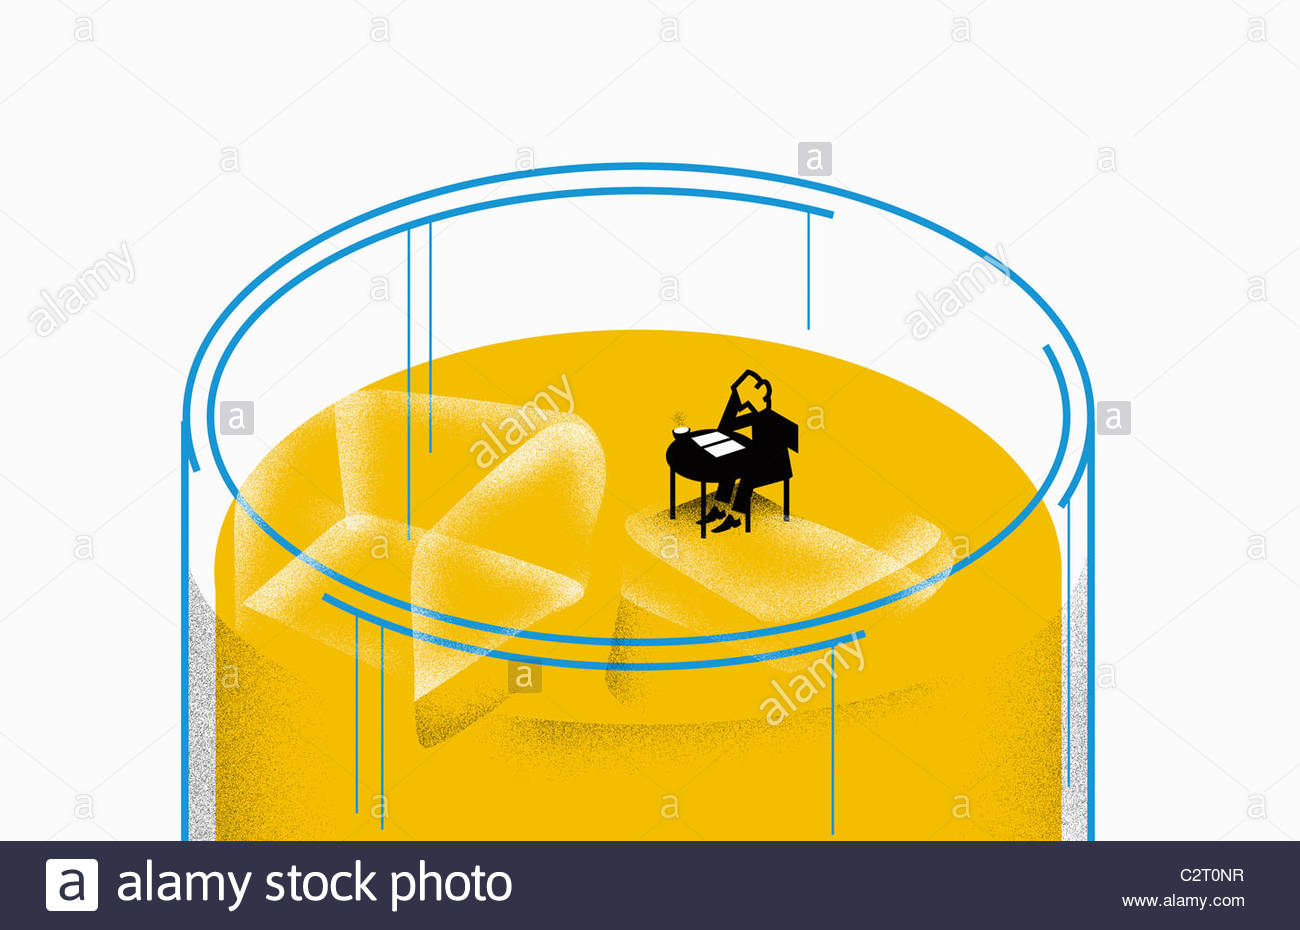 Person sitting at table floating on ice cube - Stock Image